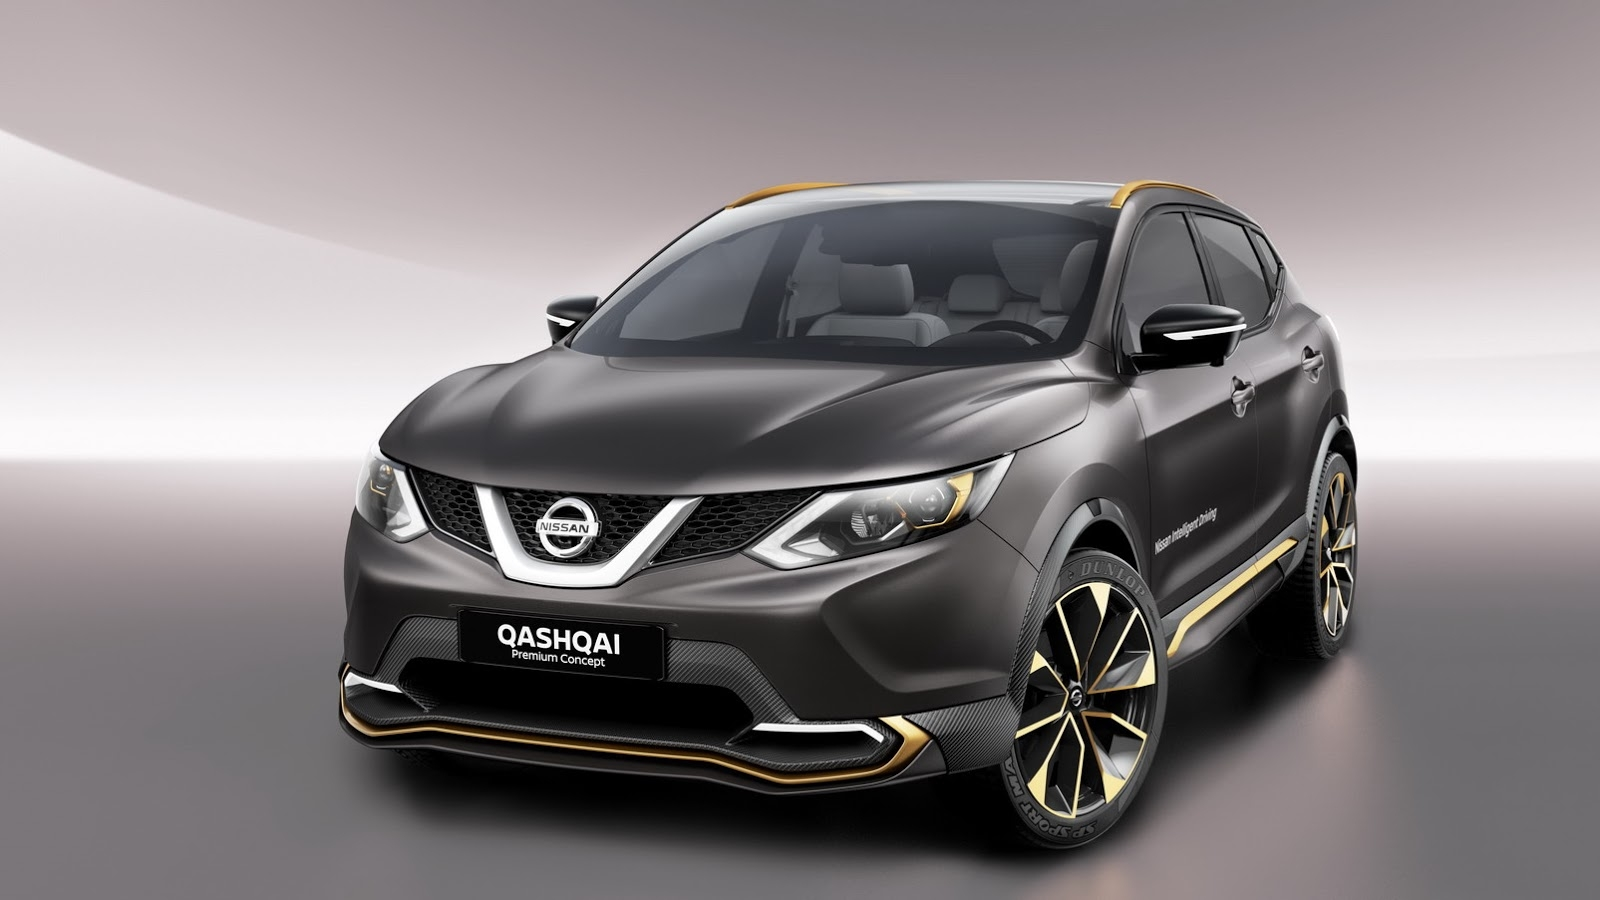 nissan veut la peau des marques premium avec un qashqai. Black Bedroom Furniture Sets. Home Design Ideas